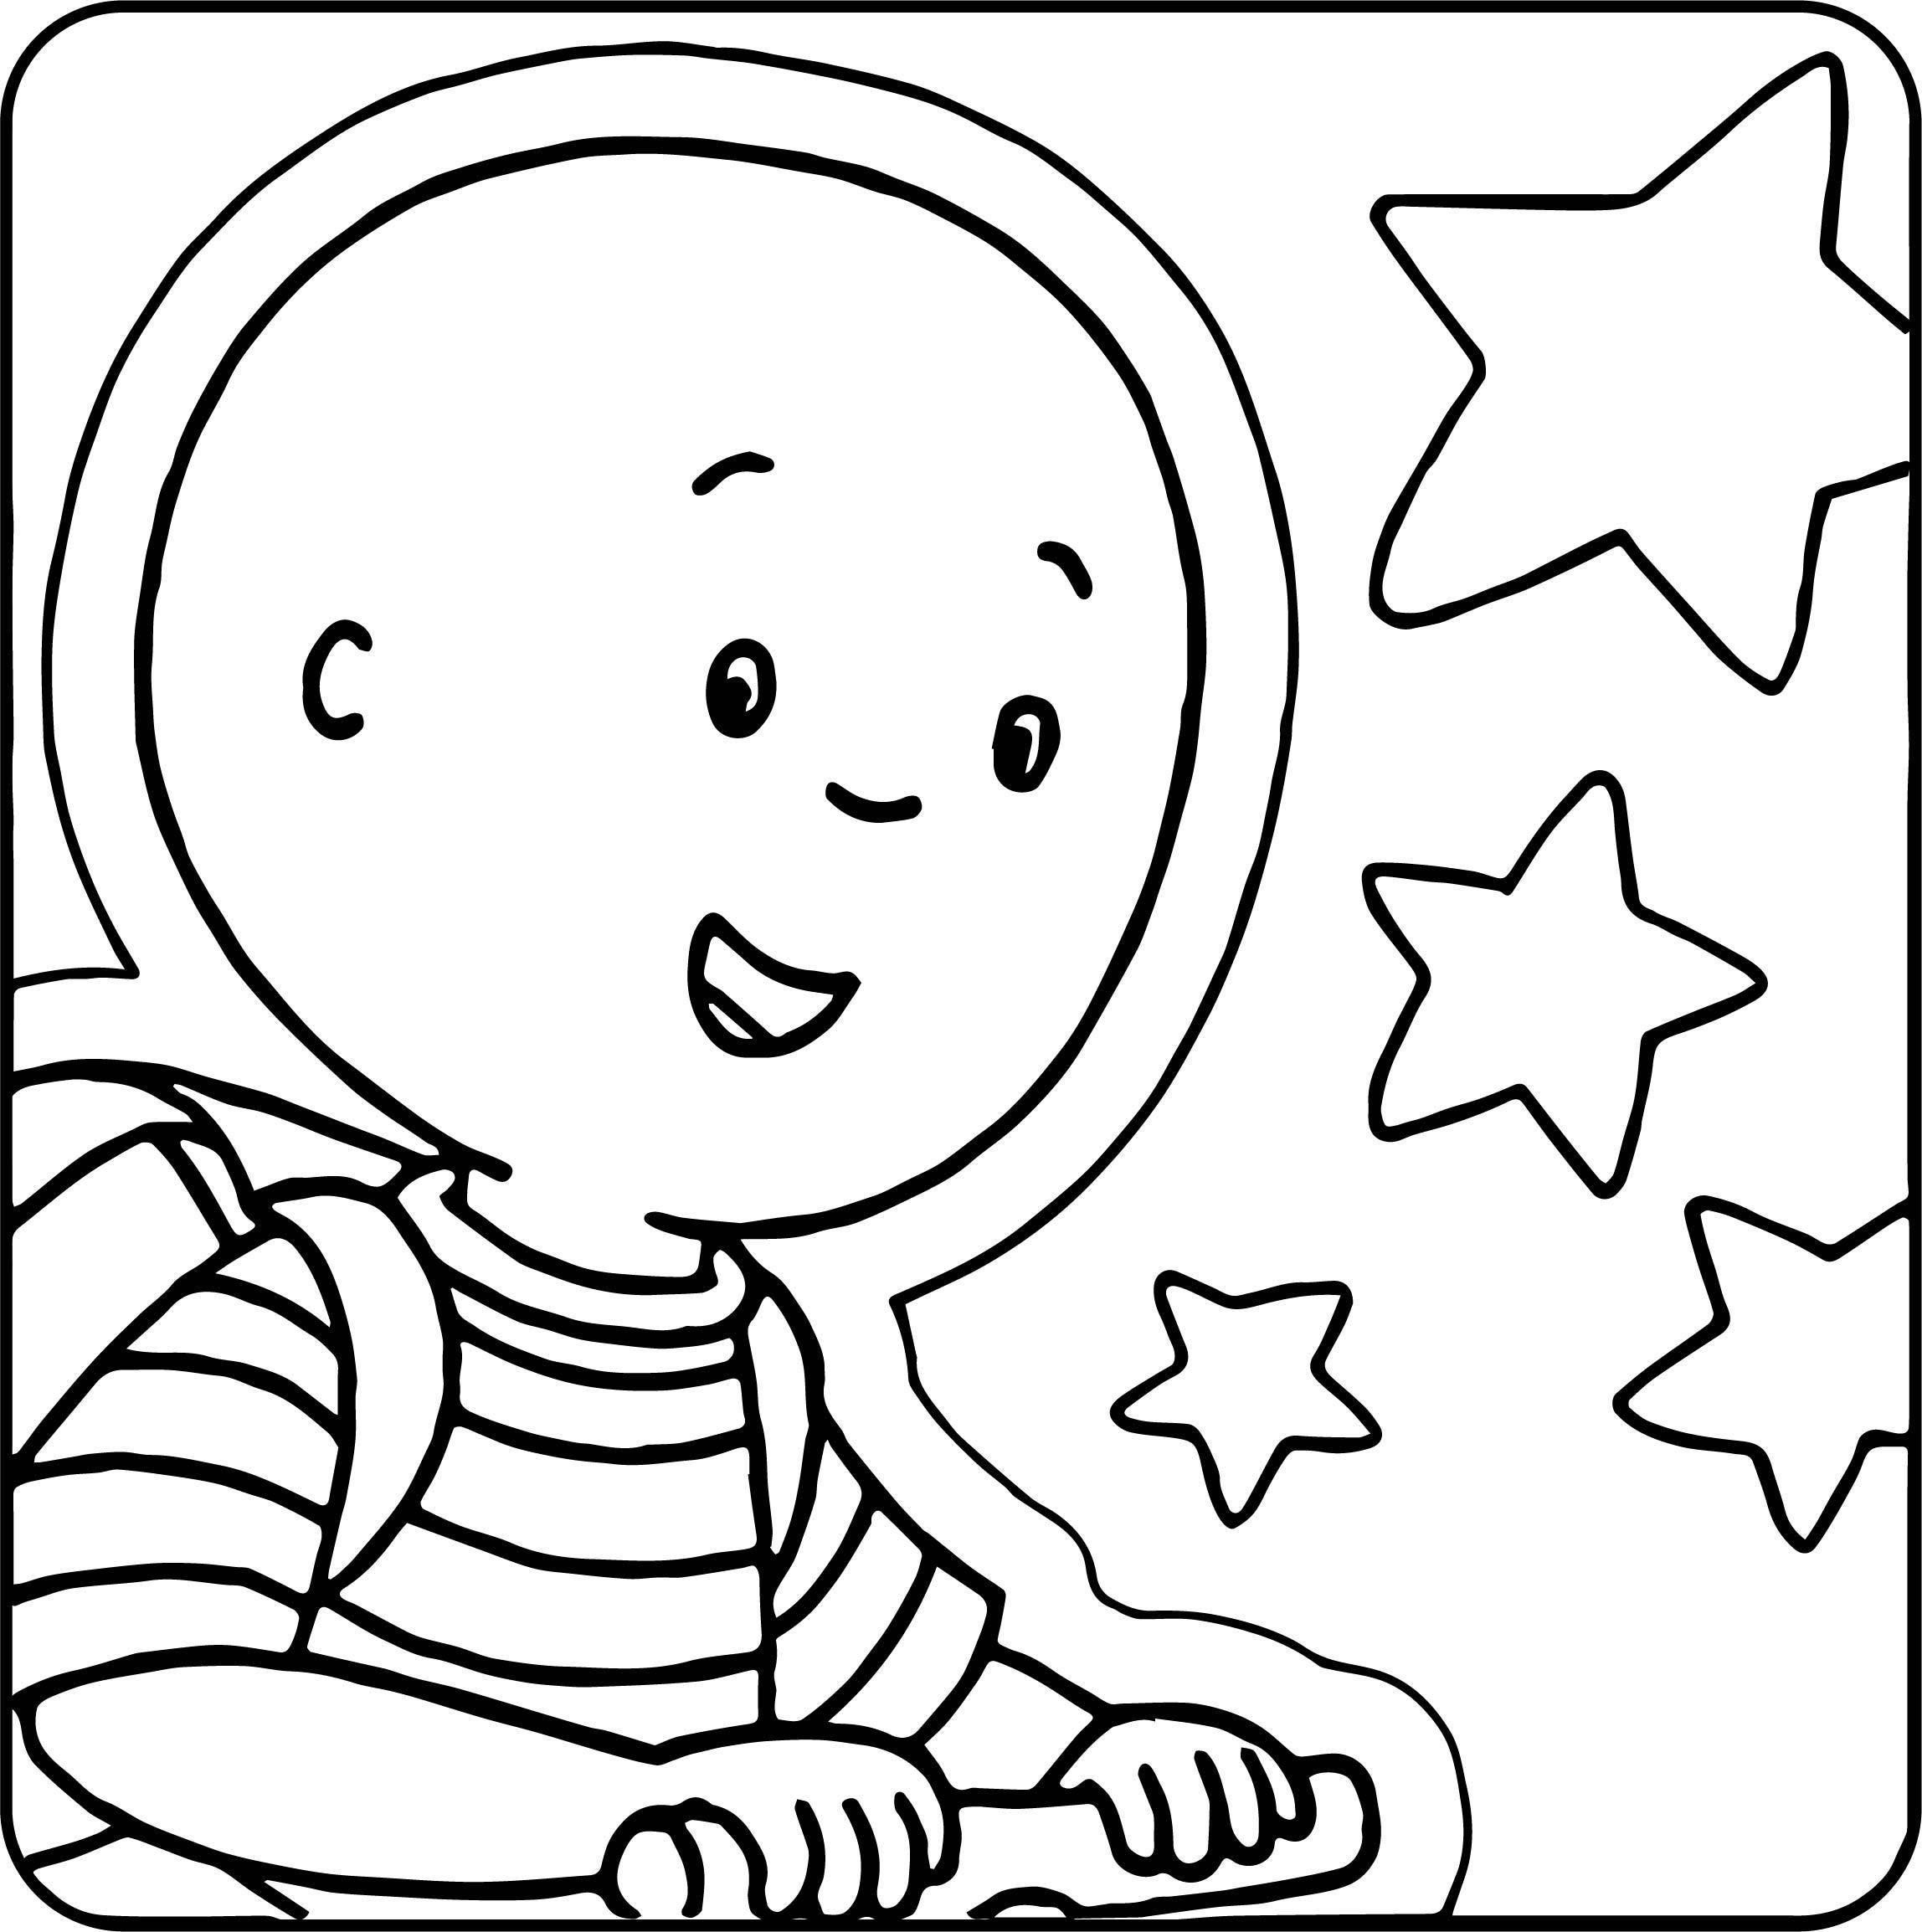 School Caillou Stars Coloring Page